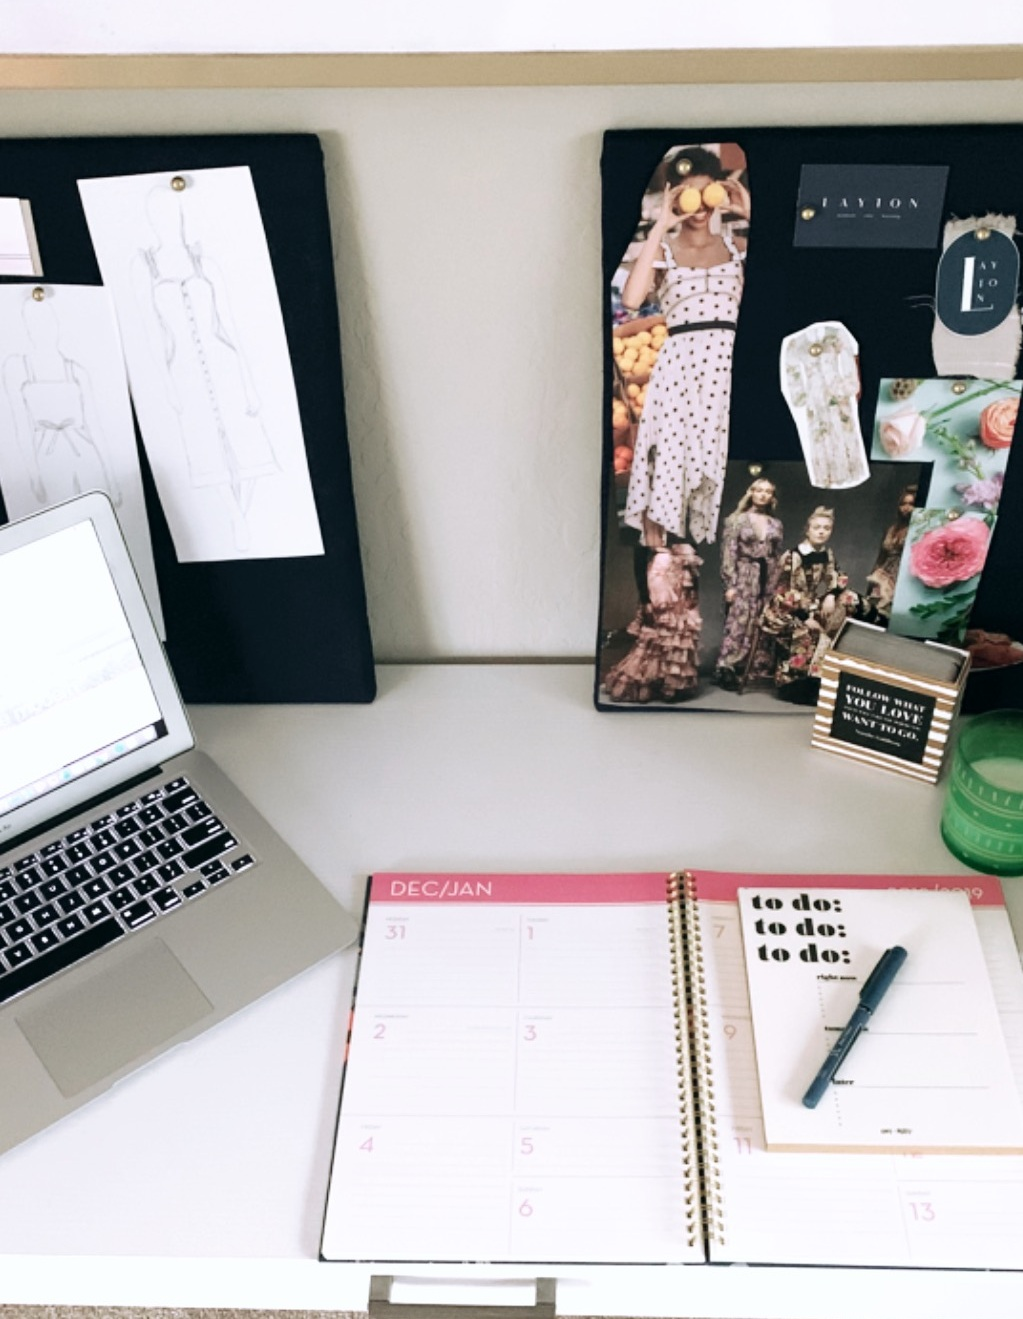 A photo of a work desk including a planner, calendar and laptop.